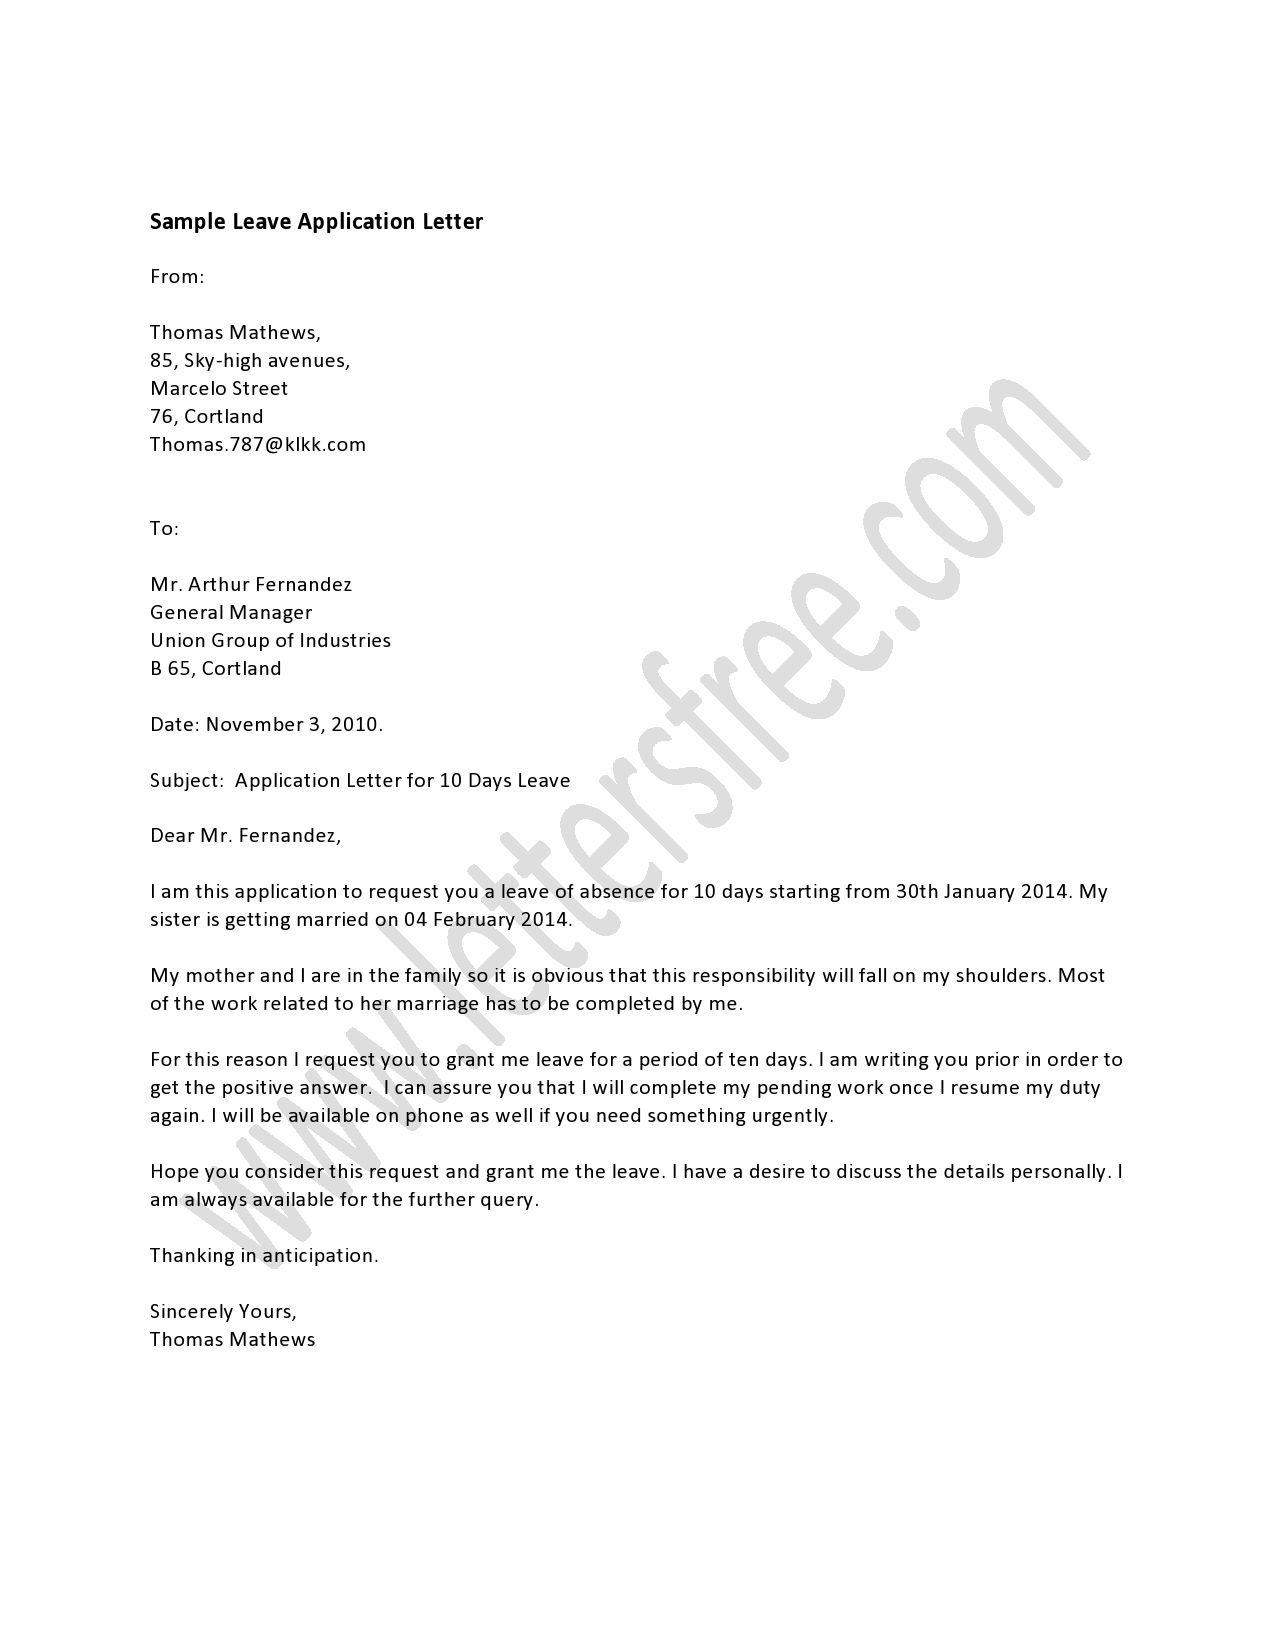 A Leave Application letter is written by an employee who